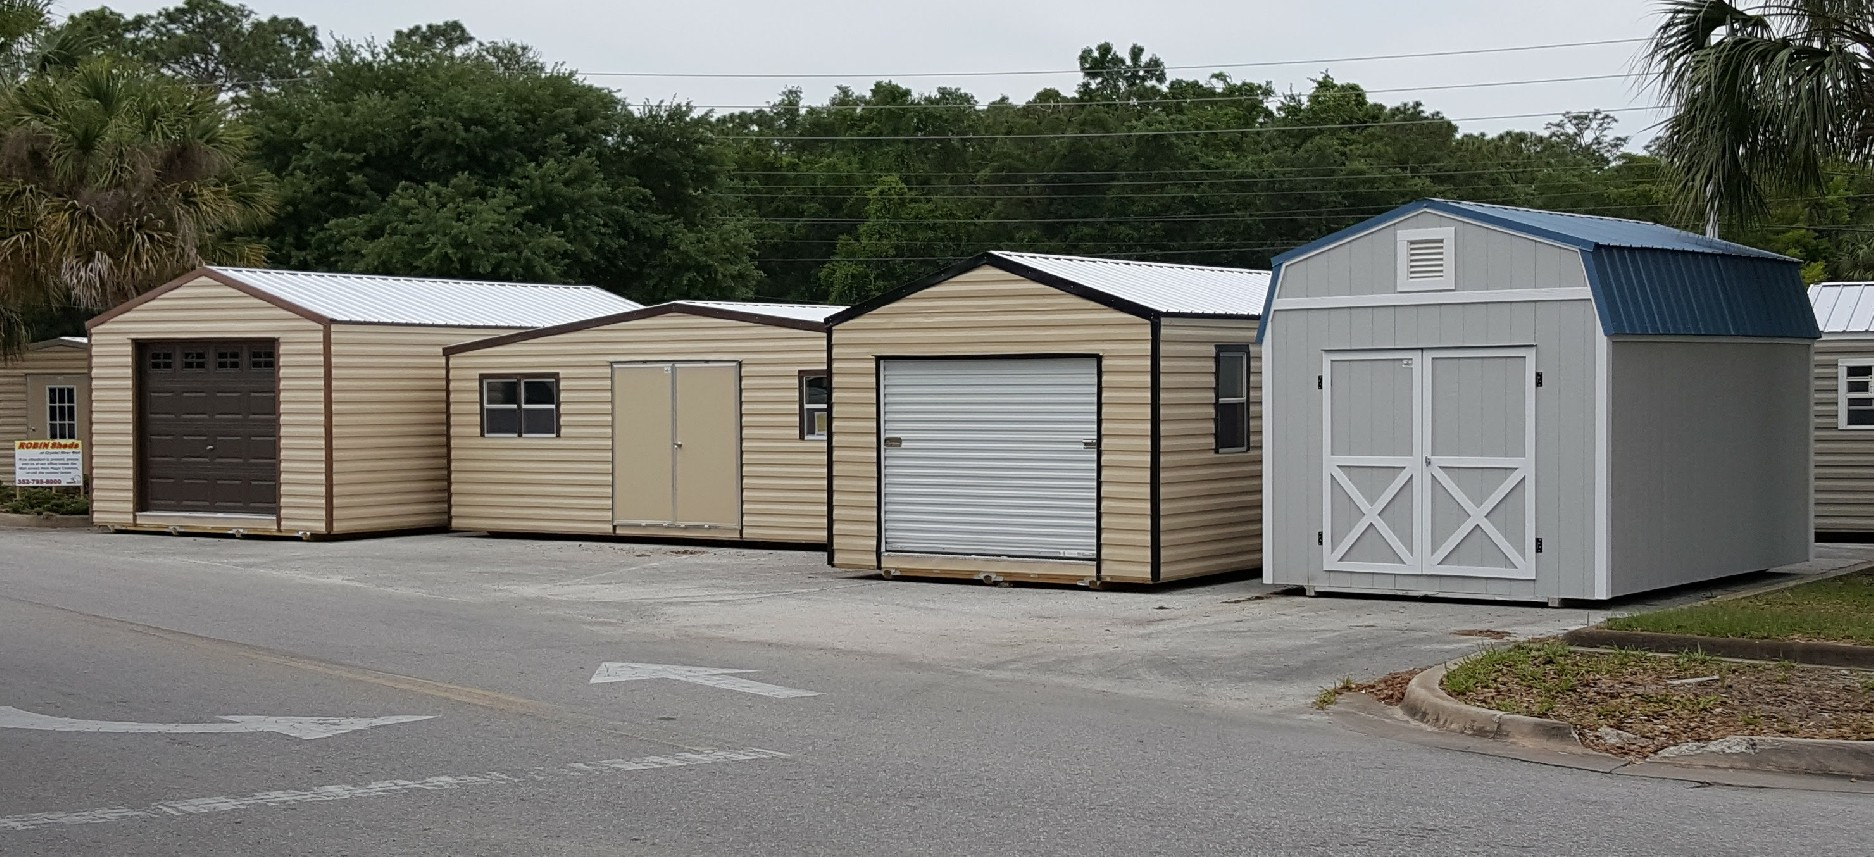 & Sheds | Metal Buildings | Garages | Pole Barns | Carports | Gazebos